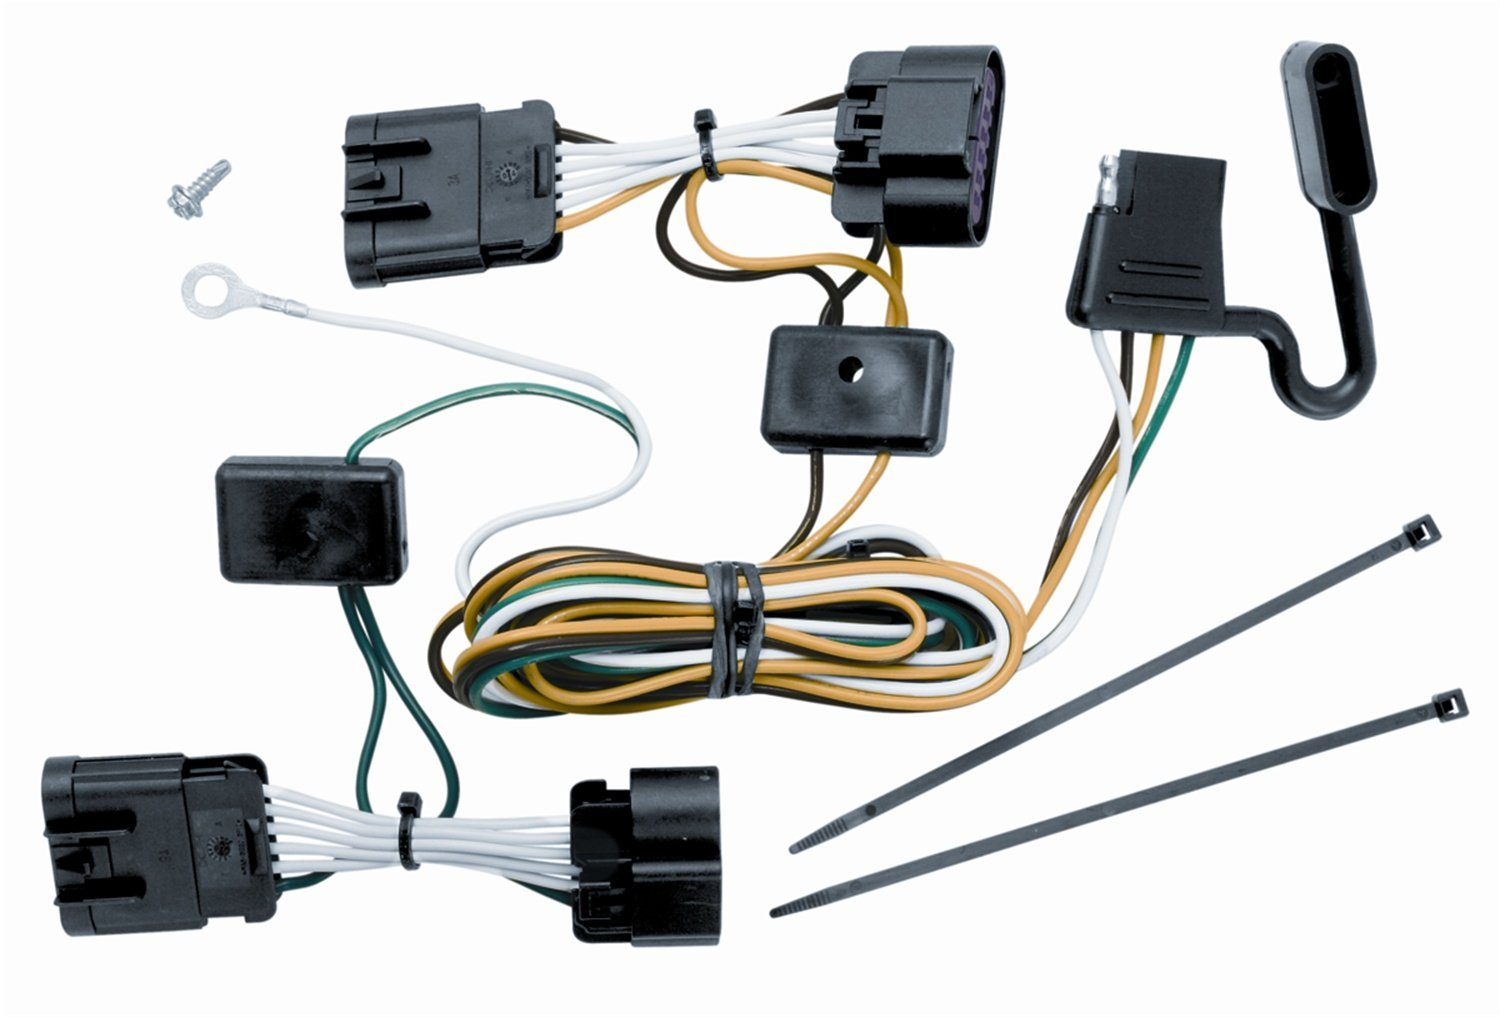 cheap chevy uplander parts find chevy uplander parts deals on line rh guide alibaba com Trailer Wiring Harness Diagram 7 Pole Trailer Wiring